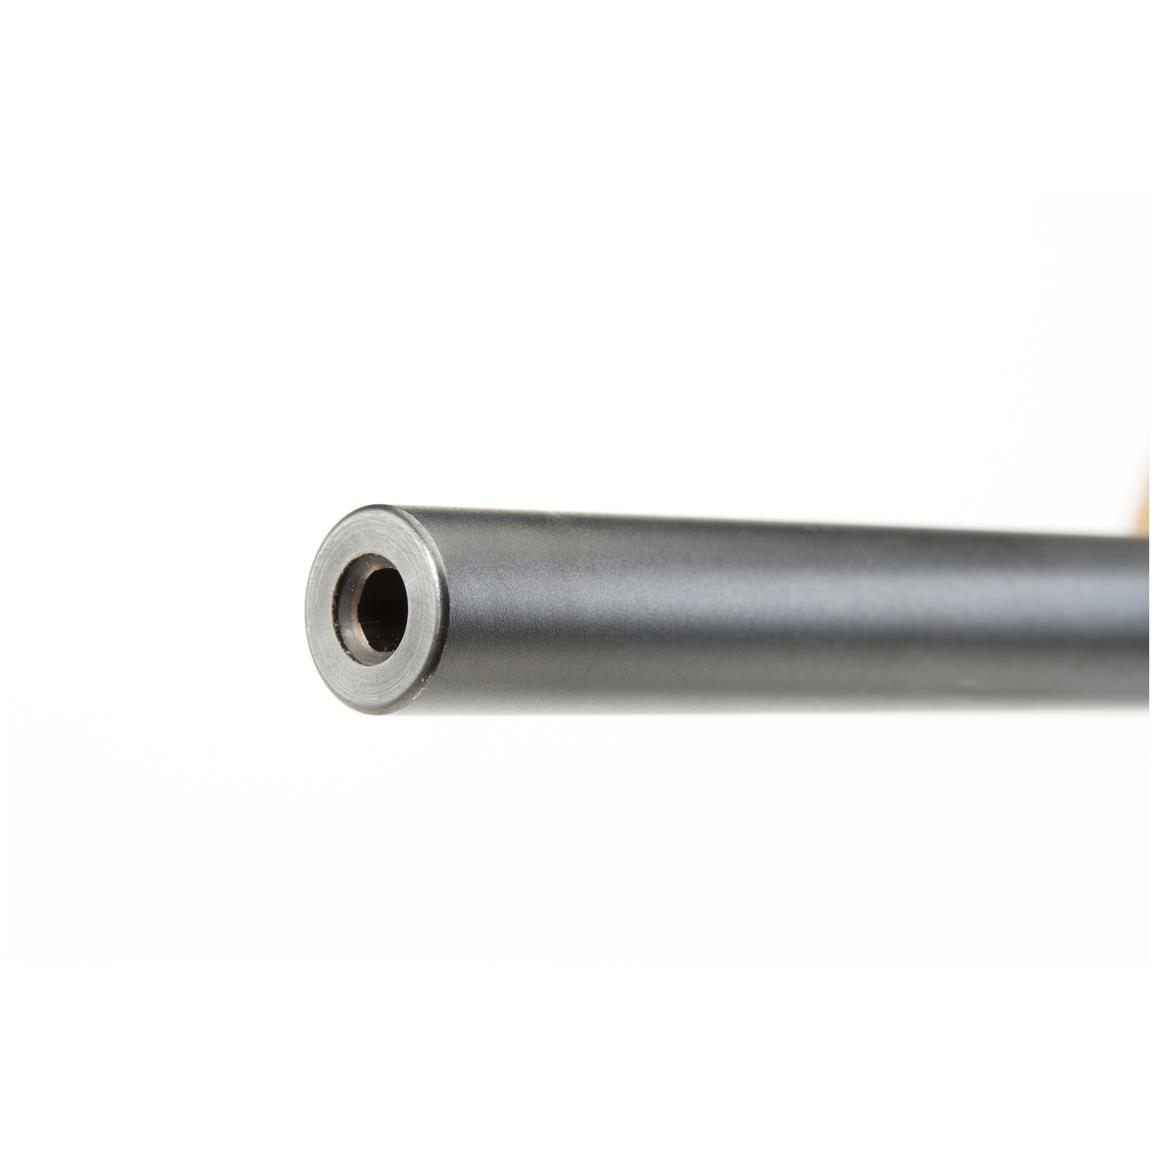 Button-rifled barrel is triple checked for quality and individually hand chambered and air gauged